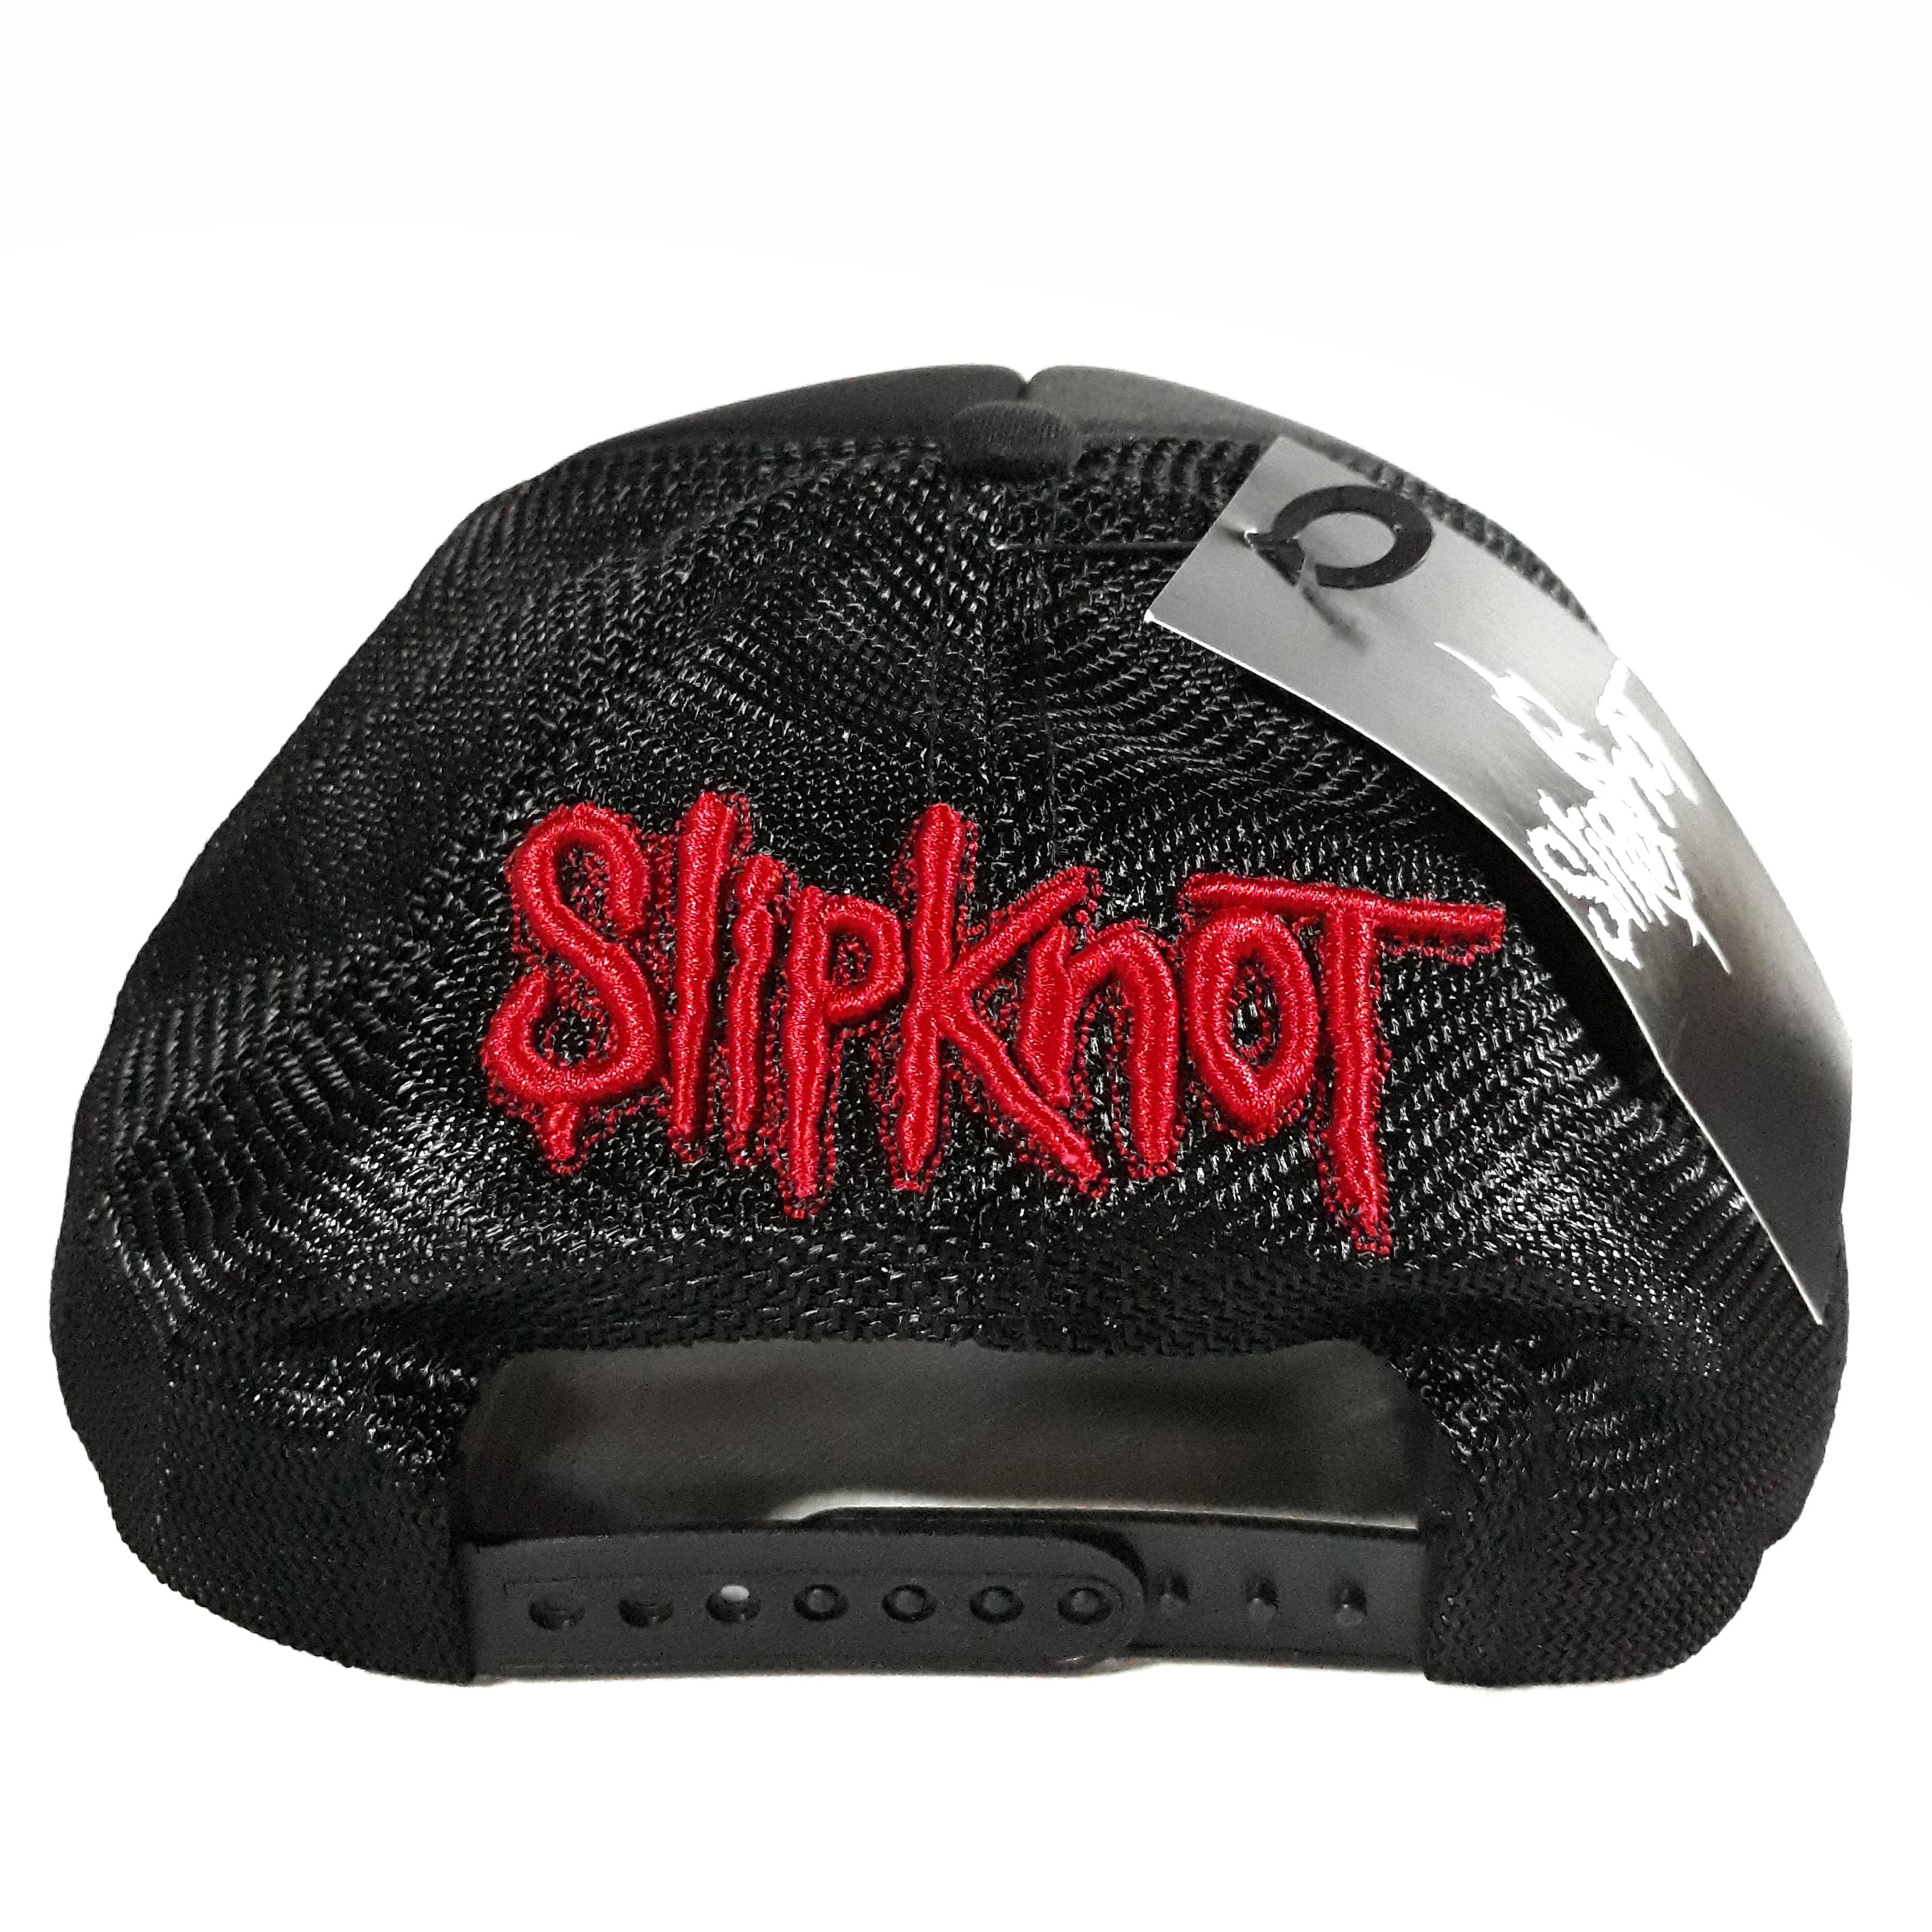 SLIPKNOT logo BASEBALL CAP LOGO (MESH BACK)1.jpeg